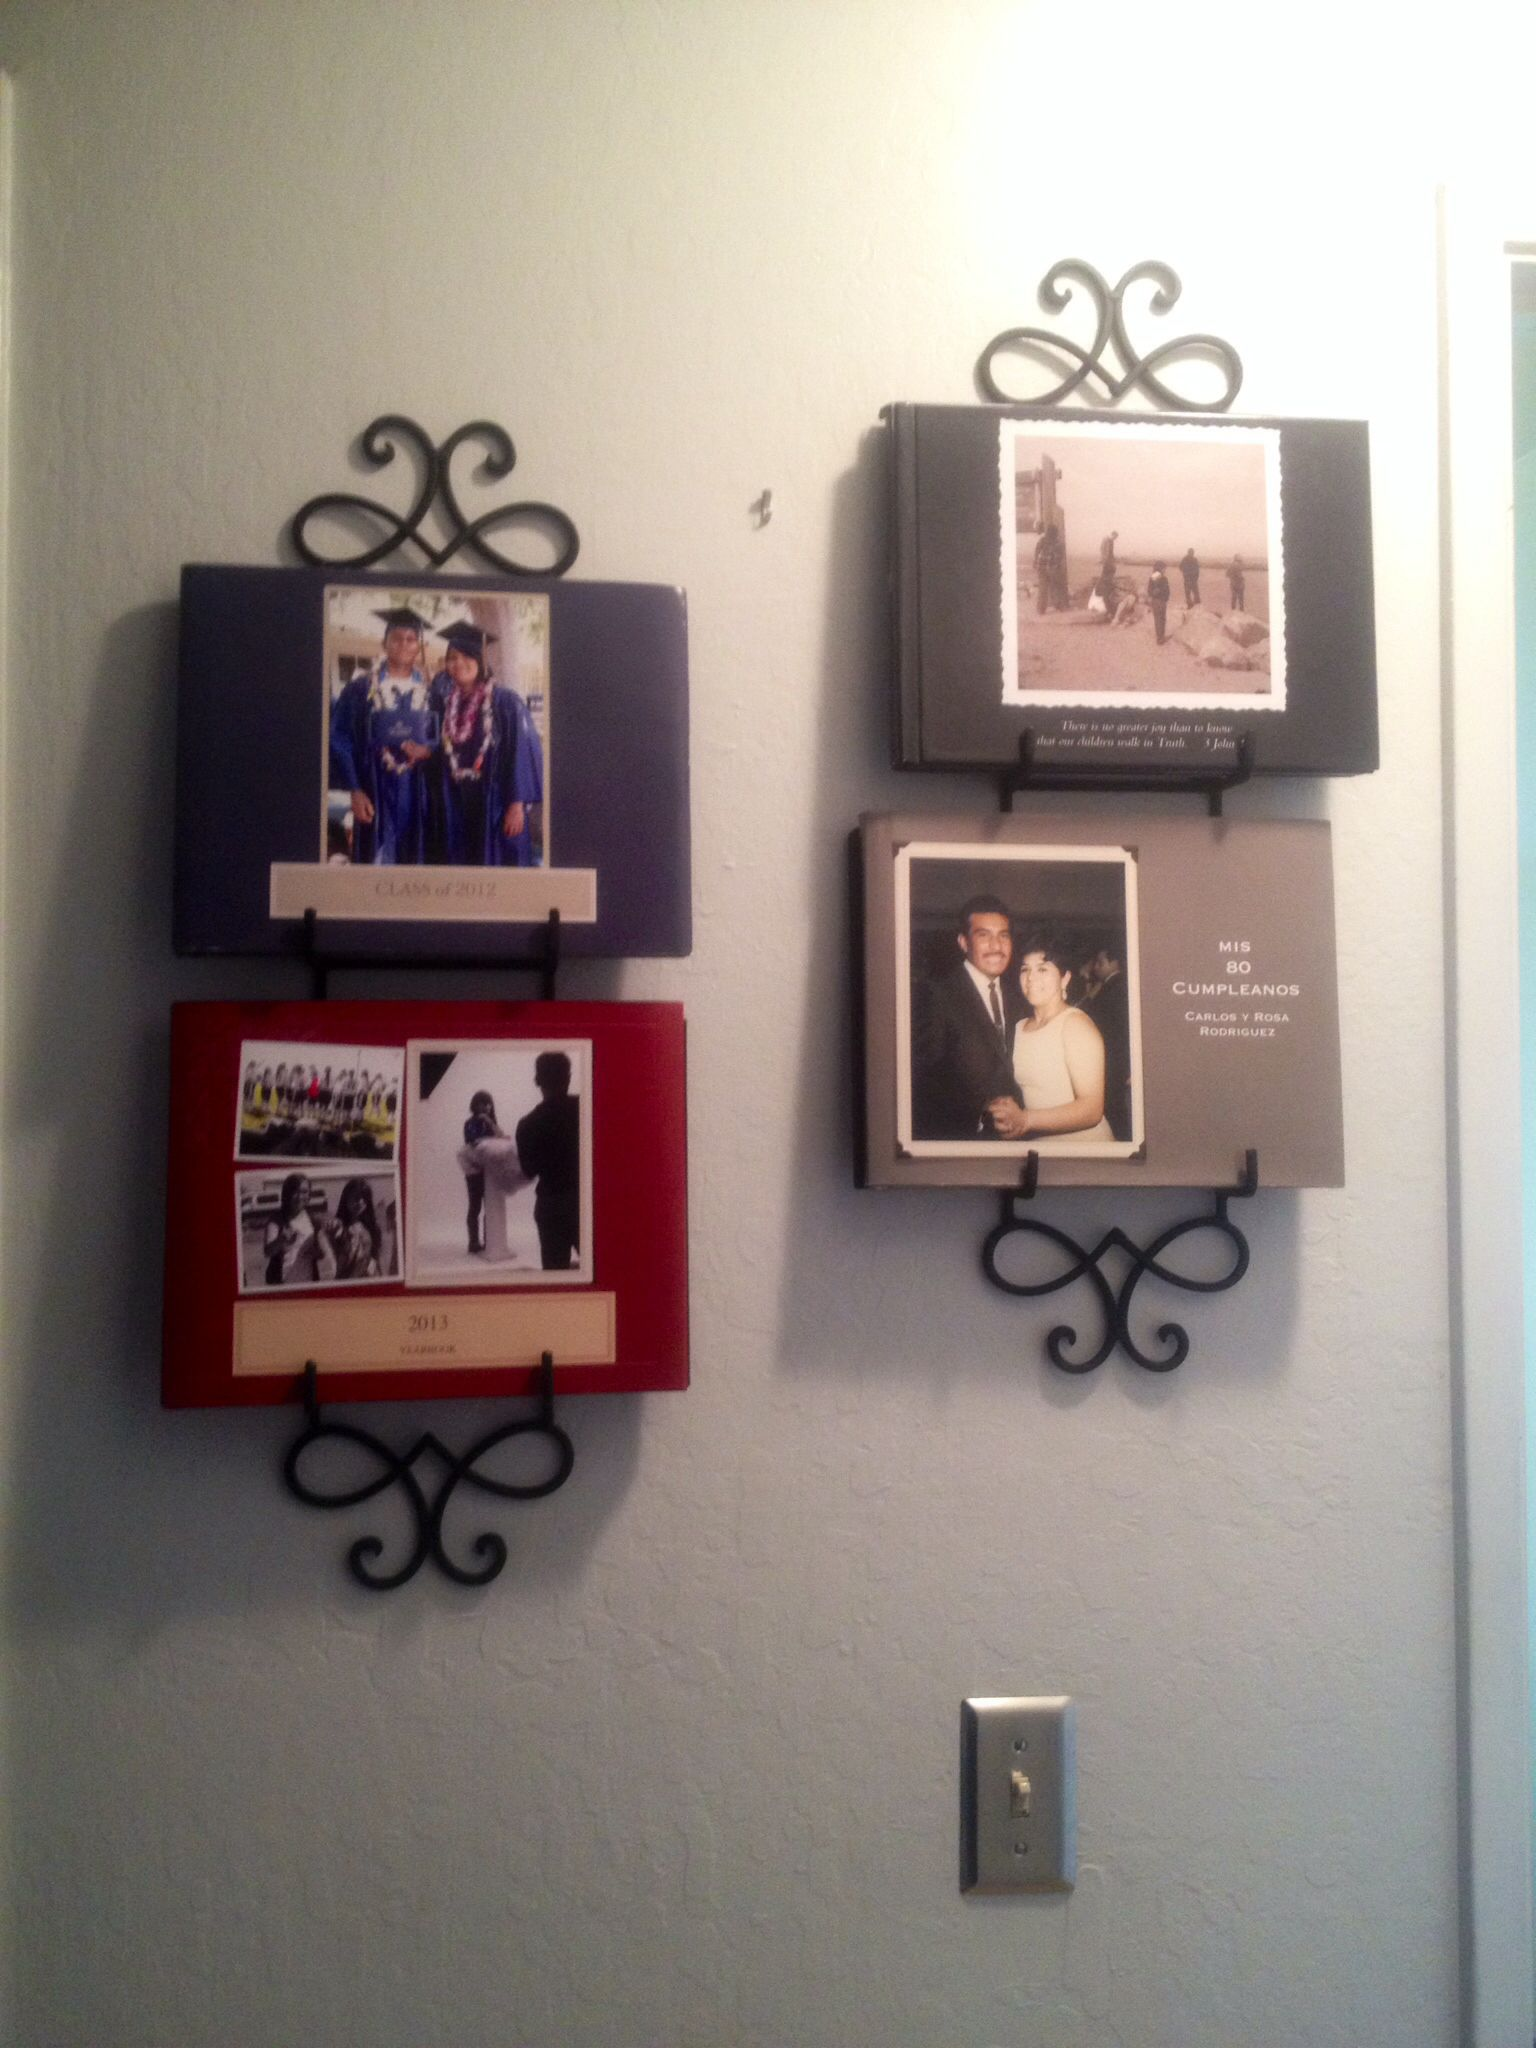 Photo Album Display   Wrought Iron Plate Racks ($6 Each At Michaelu0027s With  Coupon)